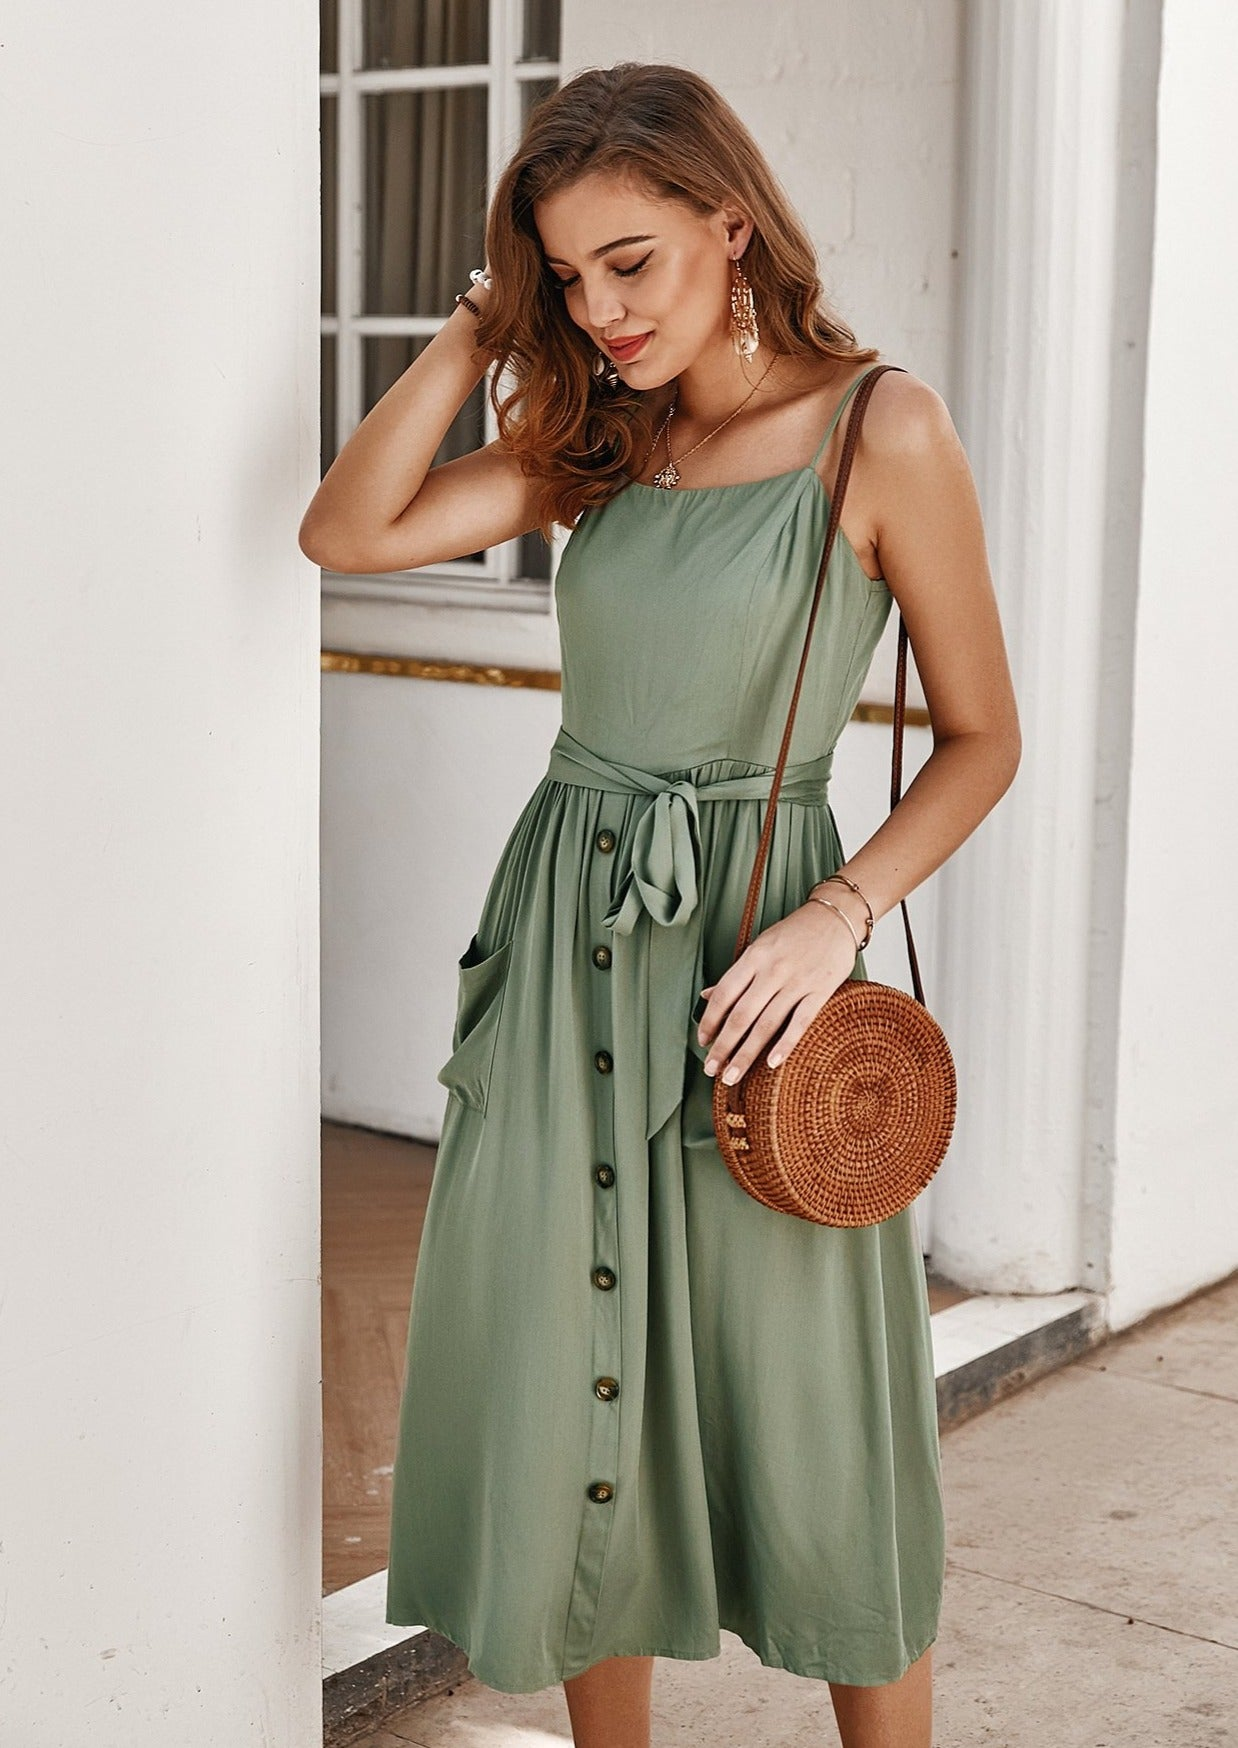 women-midi-dress-casual-summer-outfit-ideas